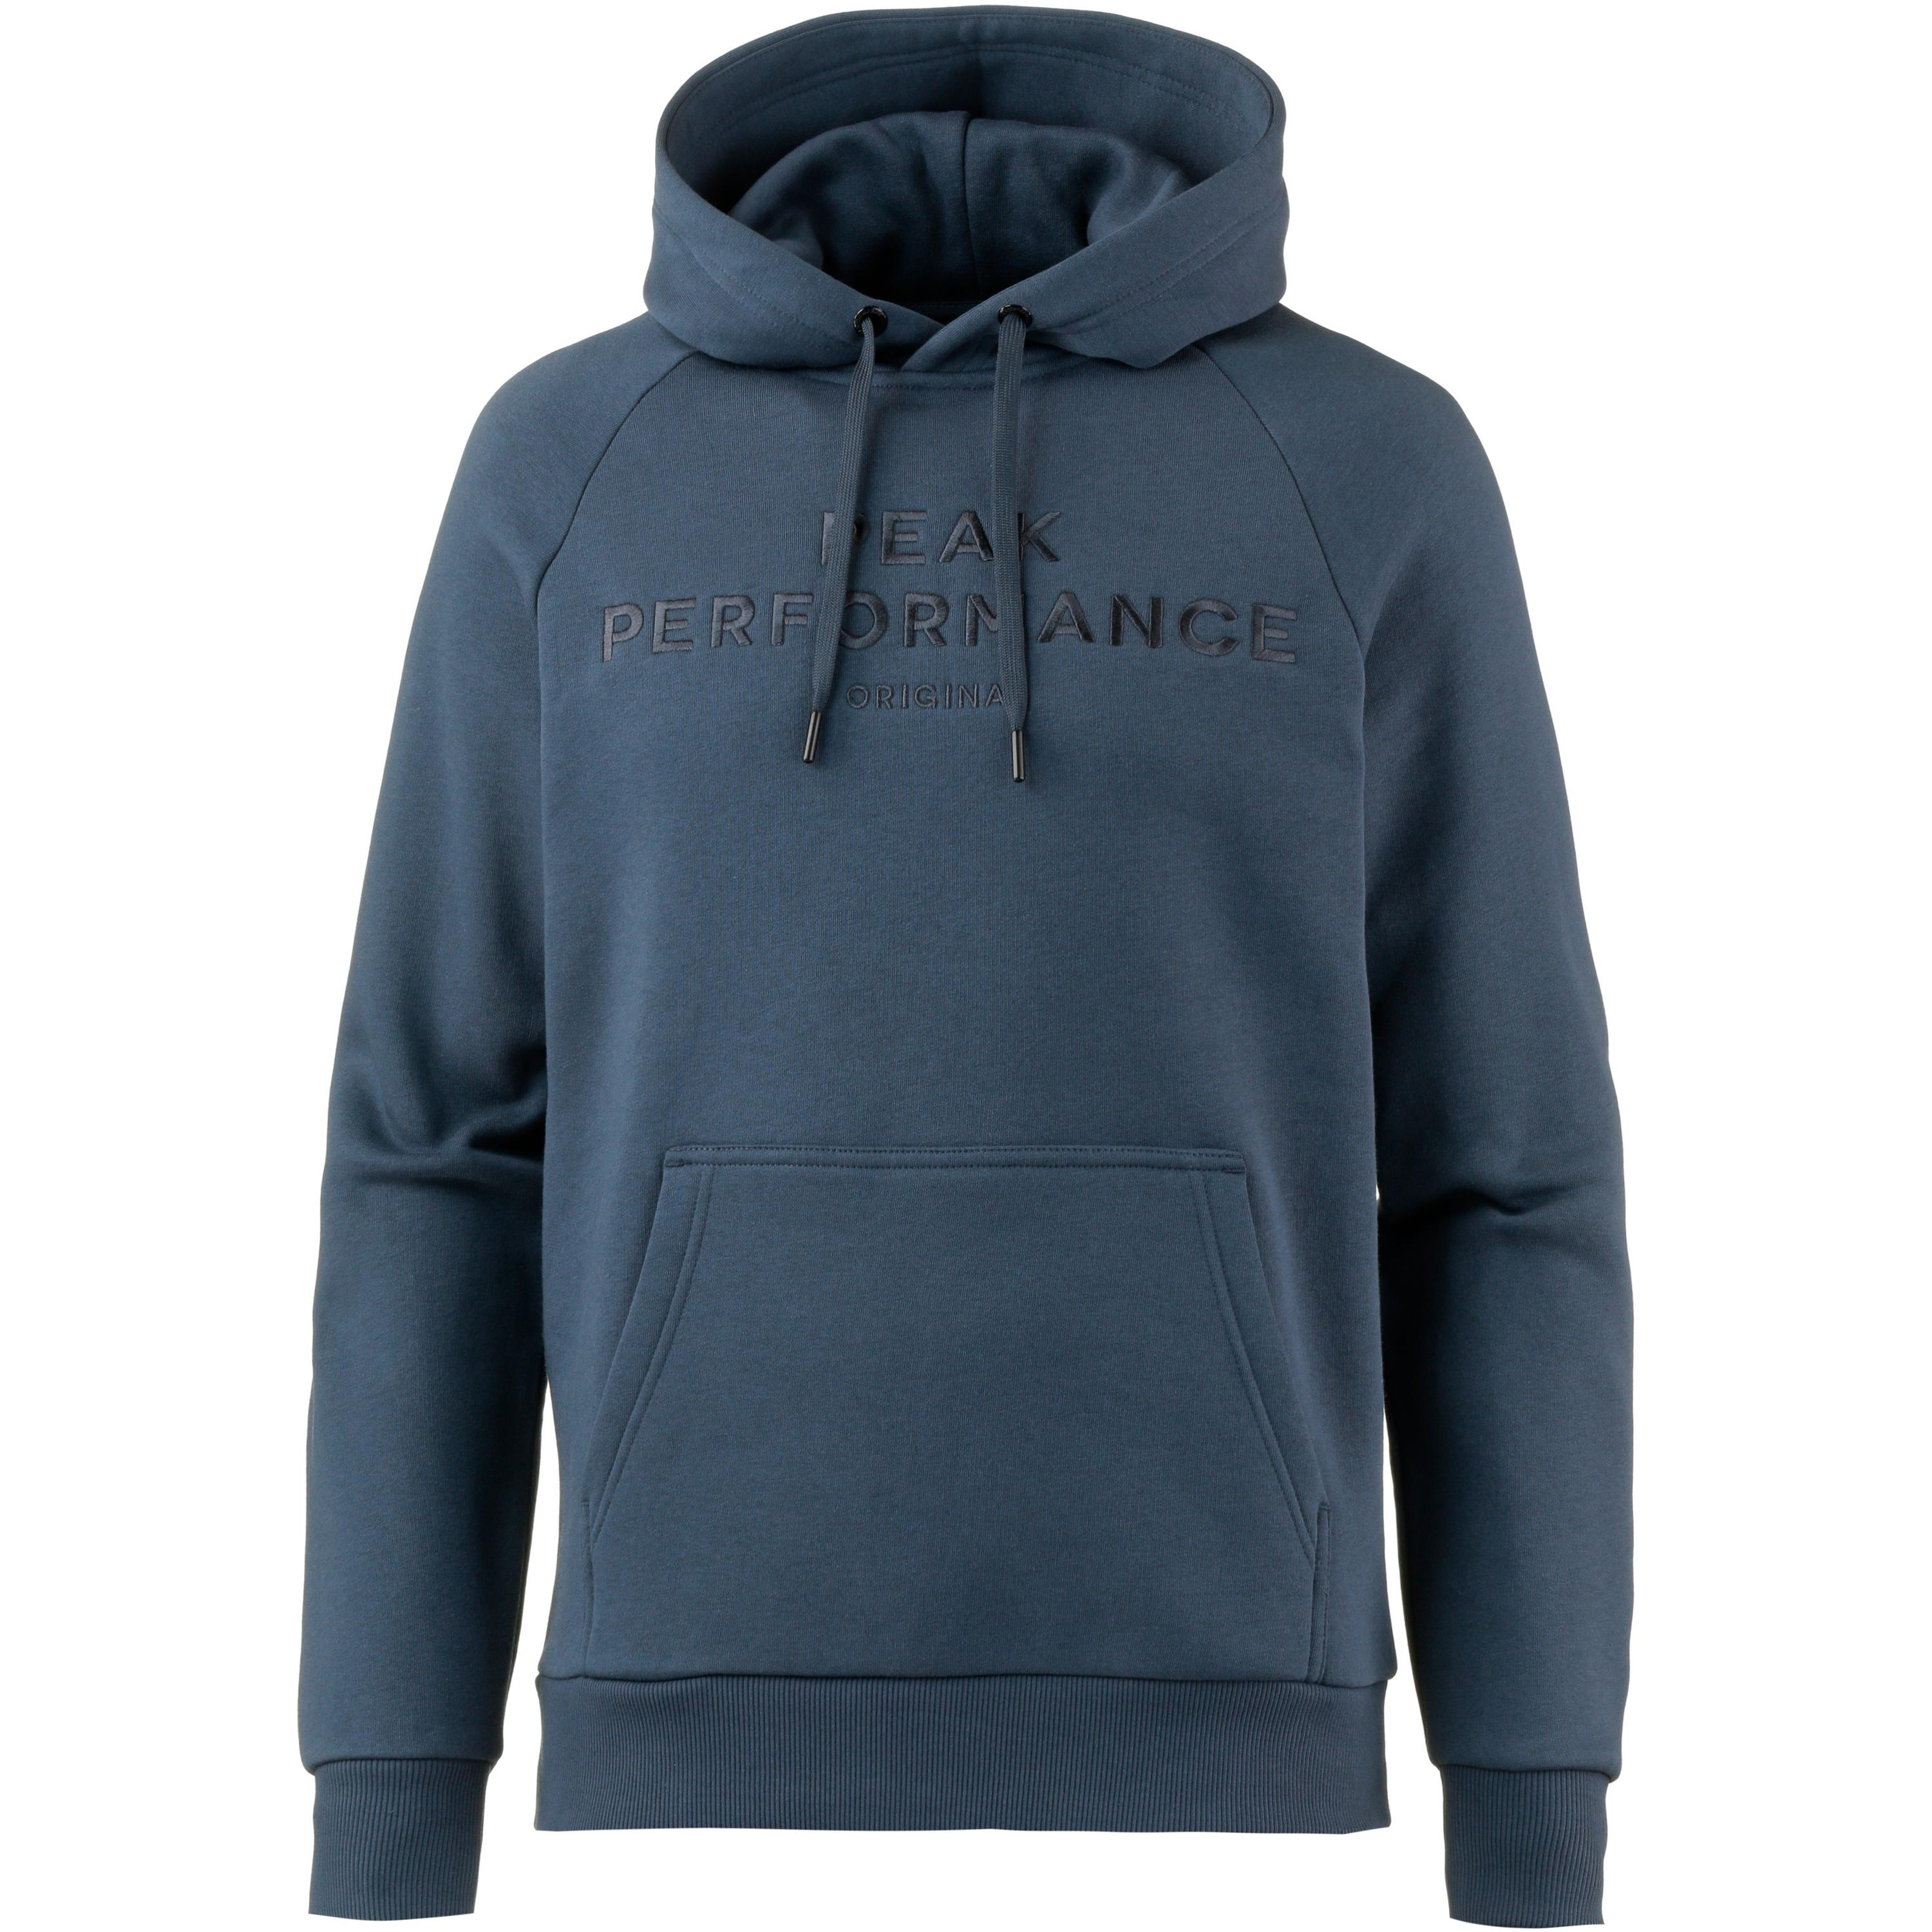 Peak Performance Original Hoodie Herren